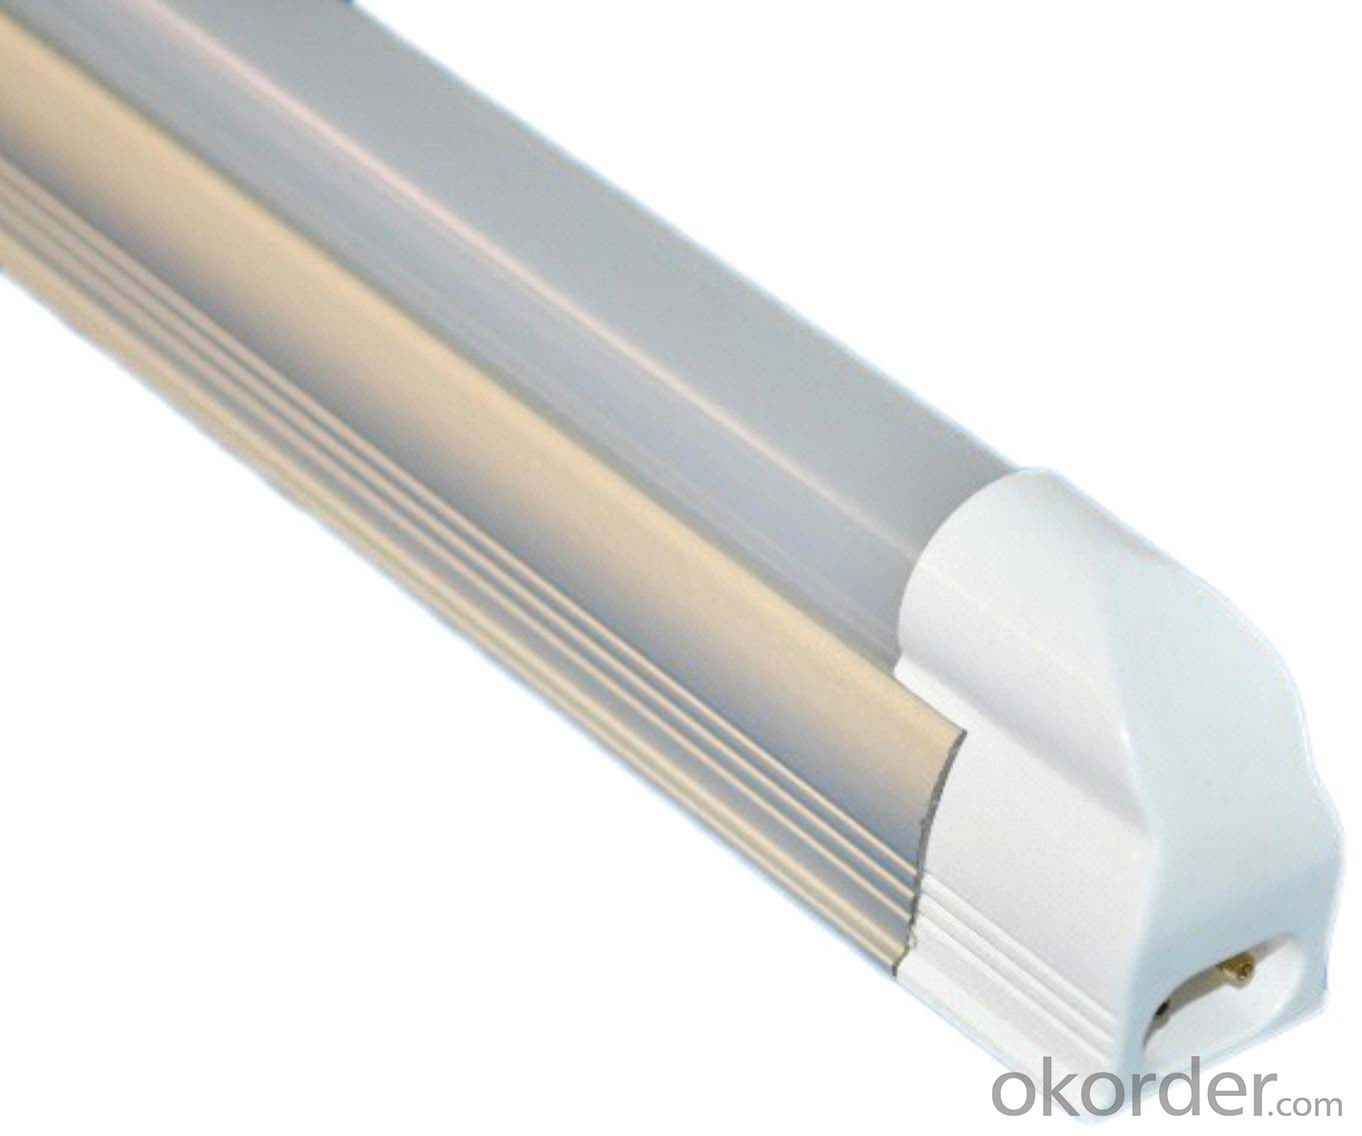 LED Tube 18W, SMD2835 ,120 PCS TAIWAN CHIPS,6000K-6500K MILKY COVER,4 feet LED T8 Tube With FA8 base ,G13 With 2-5 Years Warra